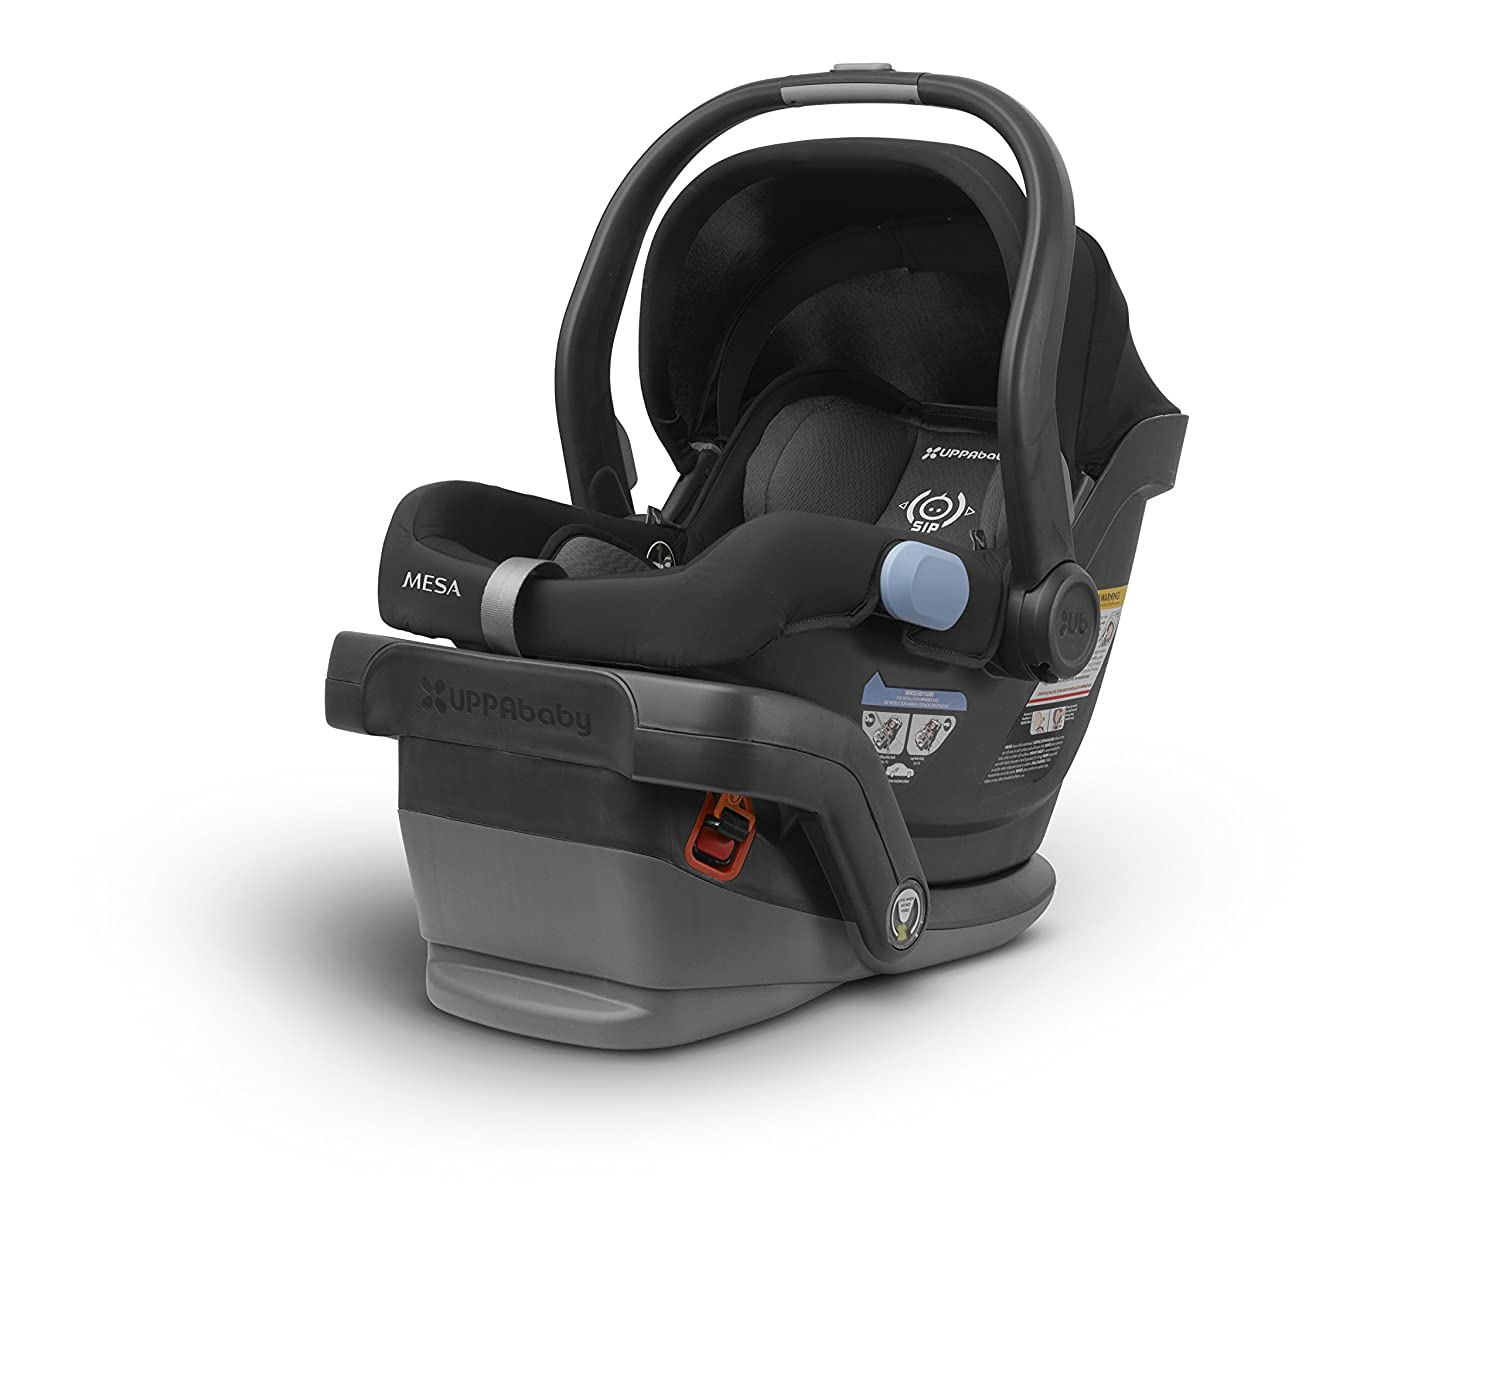 2018 UPPAbaby MESA Infant Car Seat -Jordan (Charcoal Melange) Merino Wool Version/Naturally Fire Retardant 1017-MSA-US-JOR